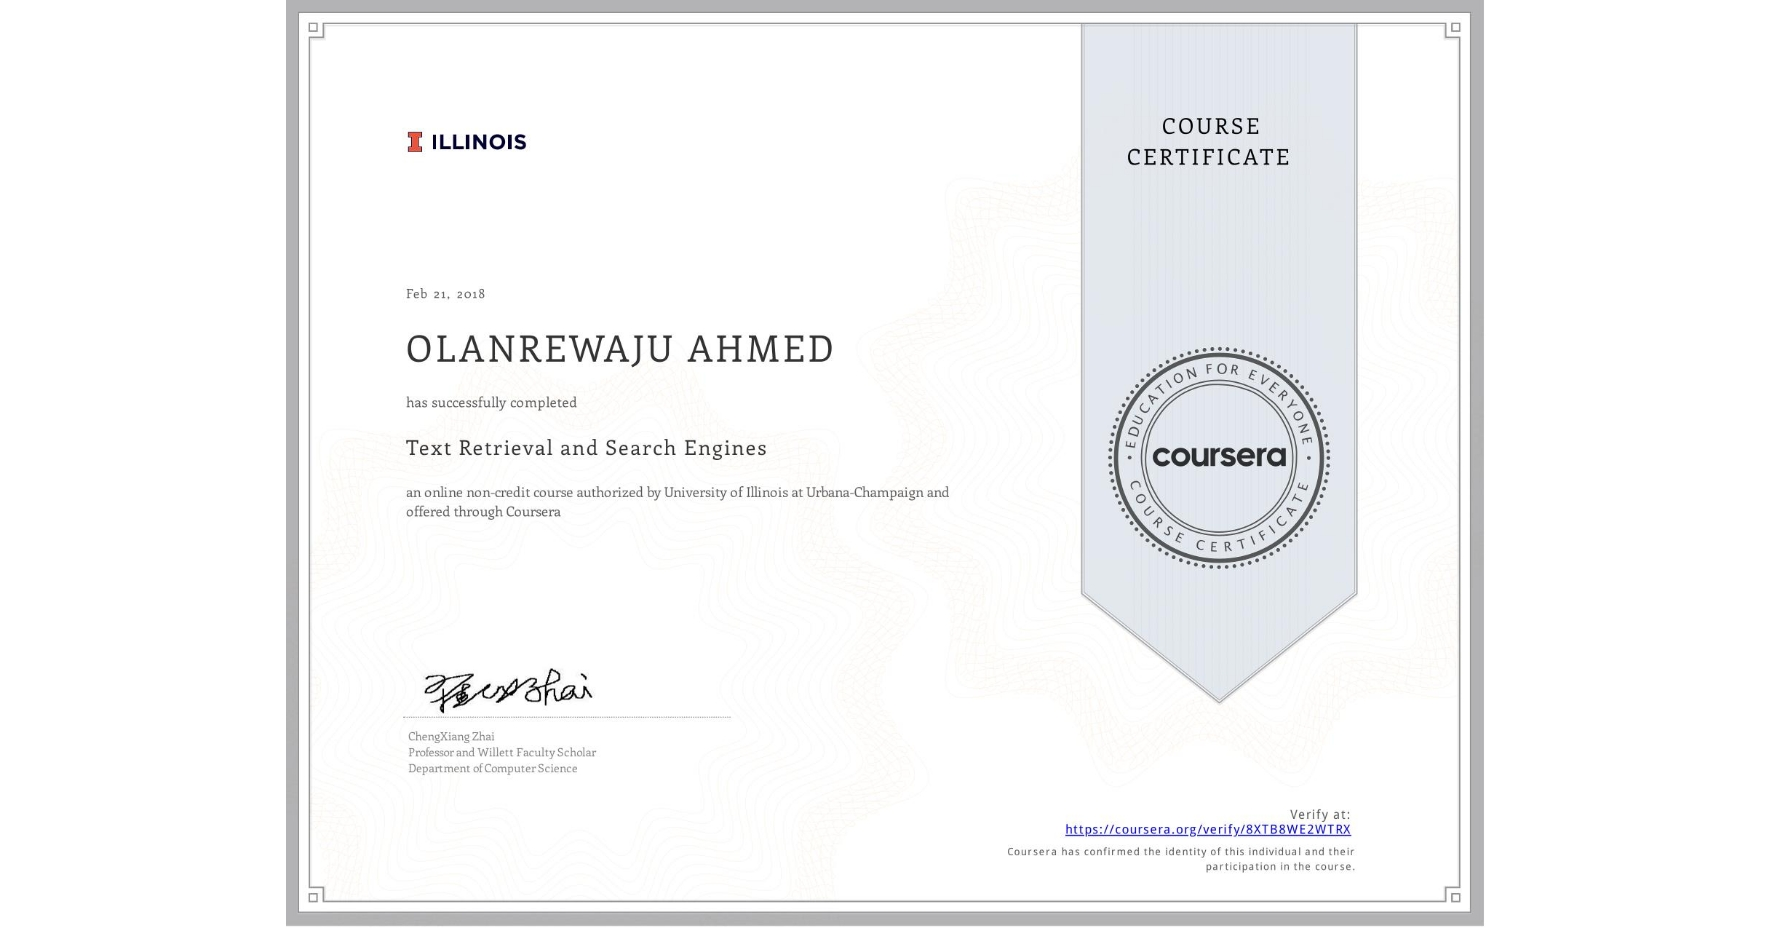 View certificate for OLANREWAJU AHMED, Text Retrieval and Search Engines, an online non-credit course authorized by University of Illinois at Urbana-Champaign and offered through Coursera